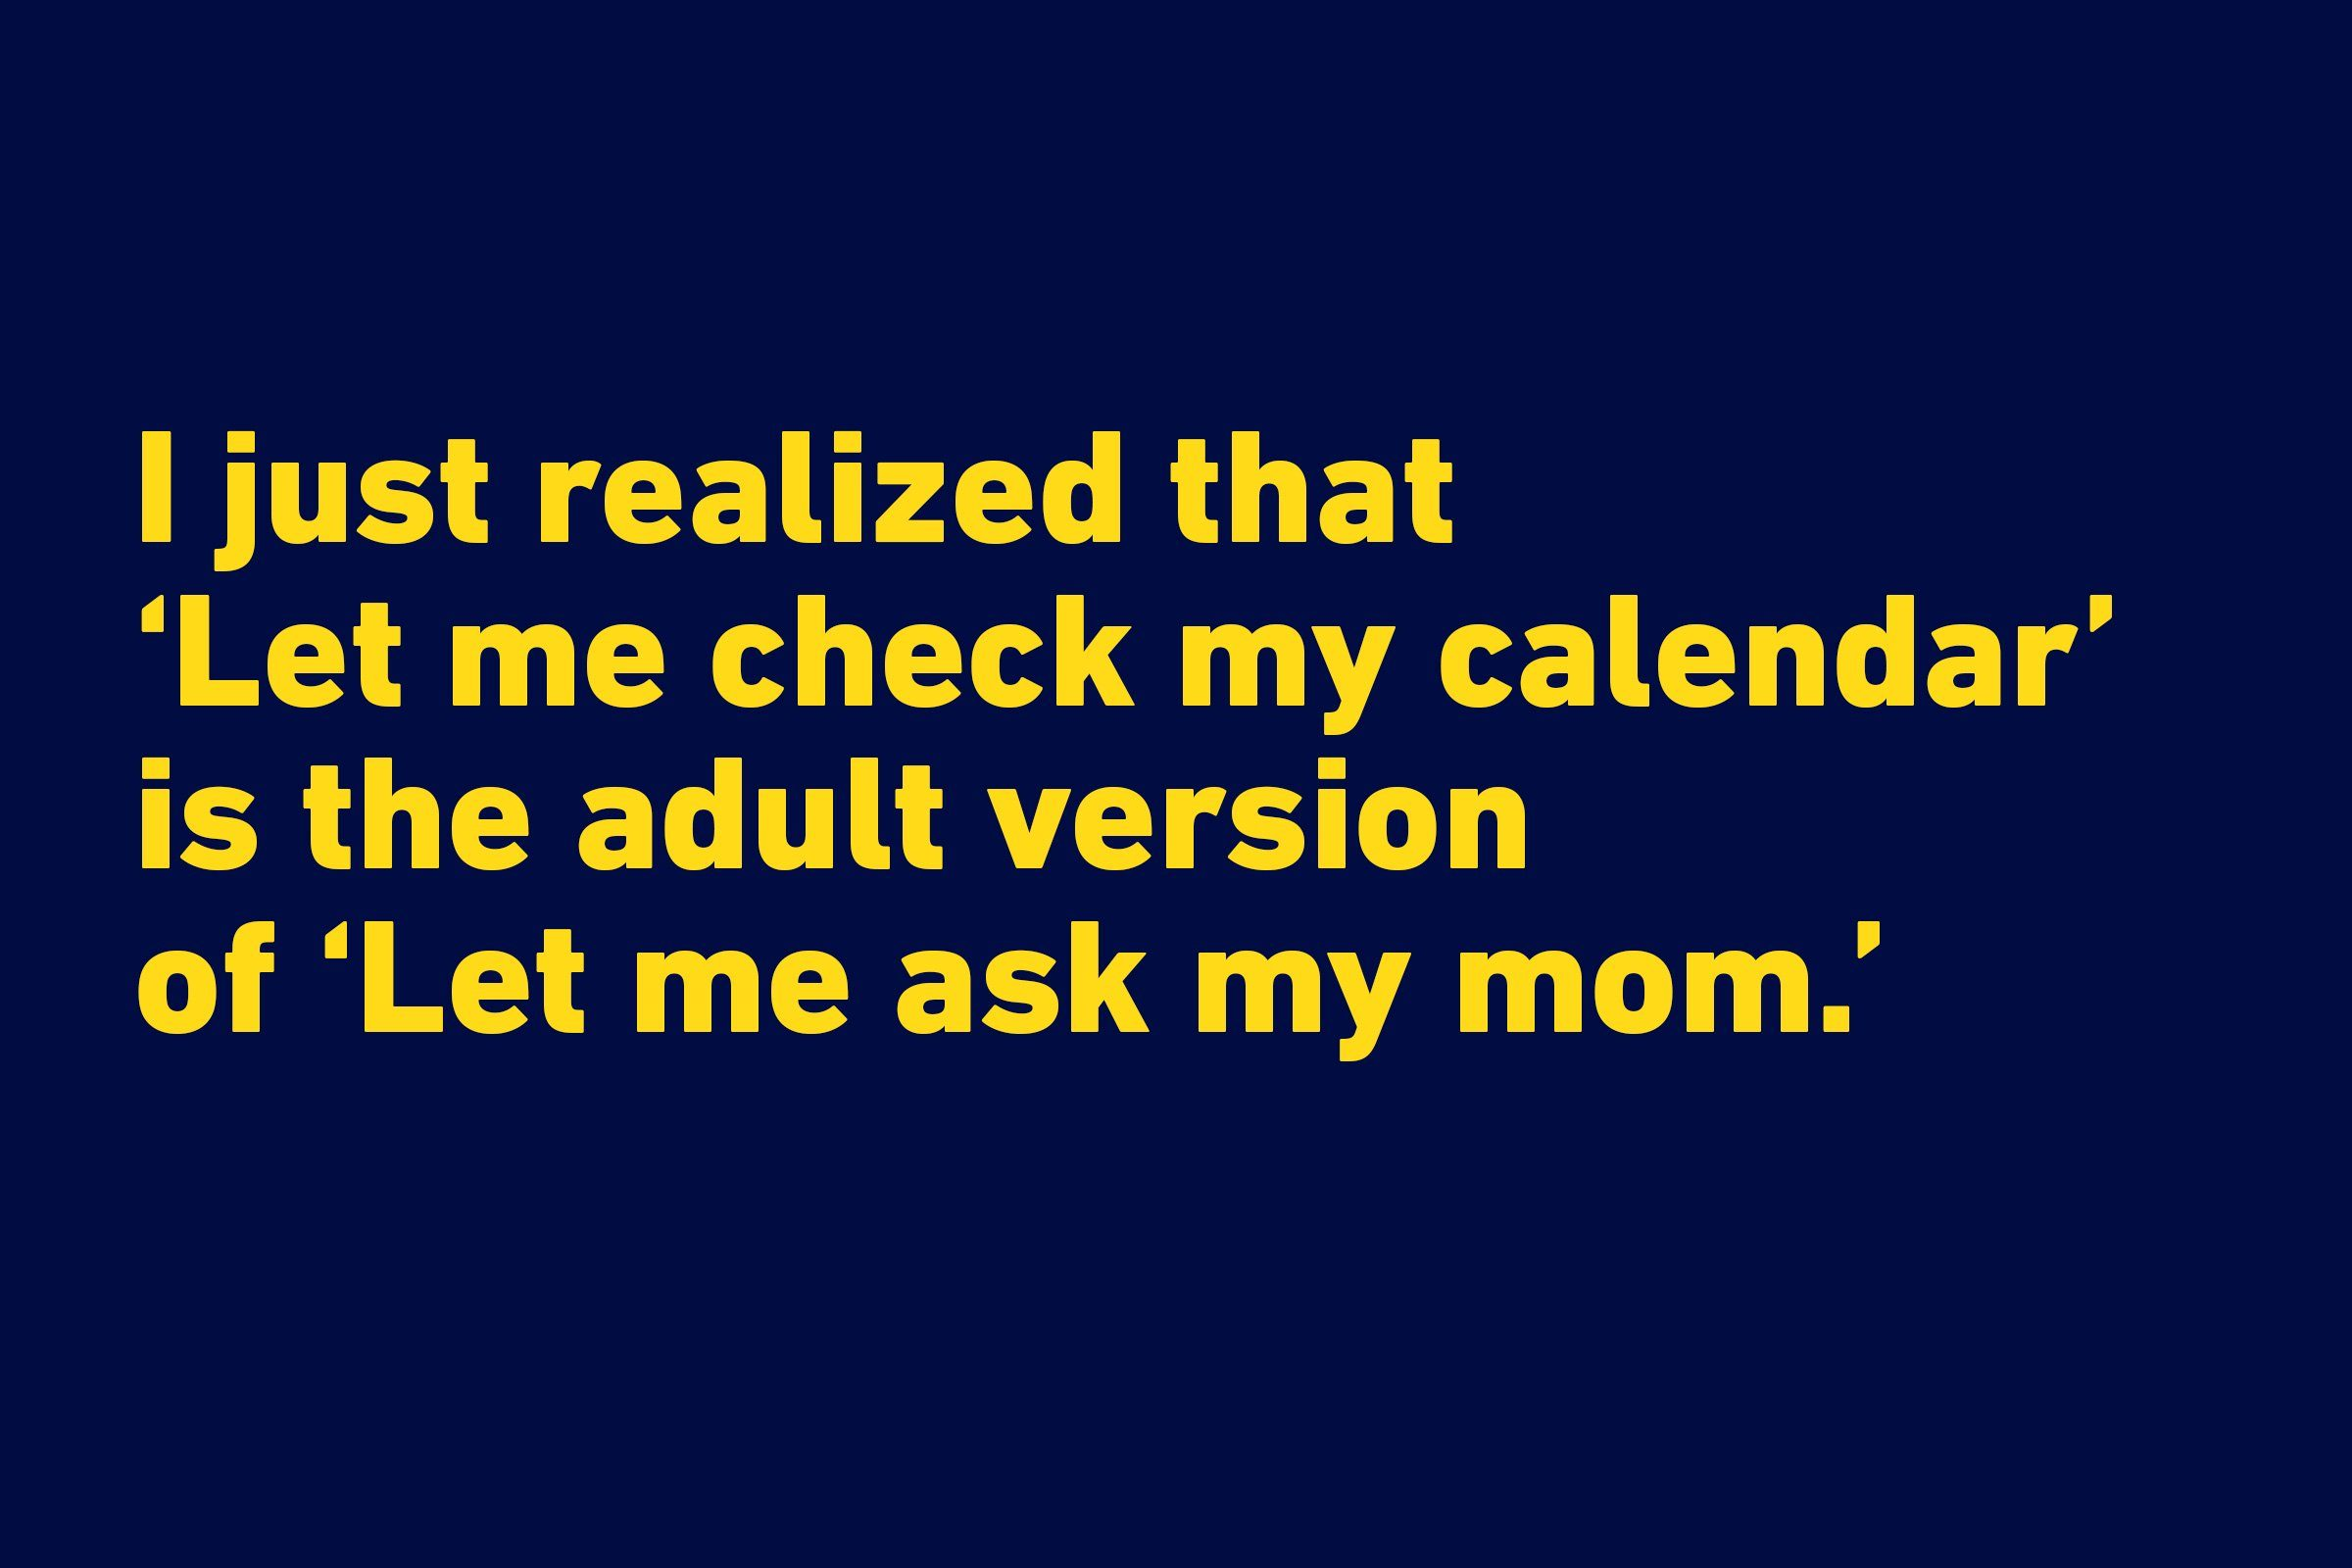 Funniest quotes of all time - Let me check my calendar